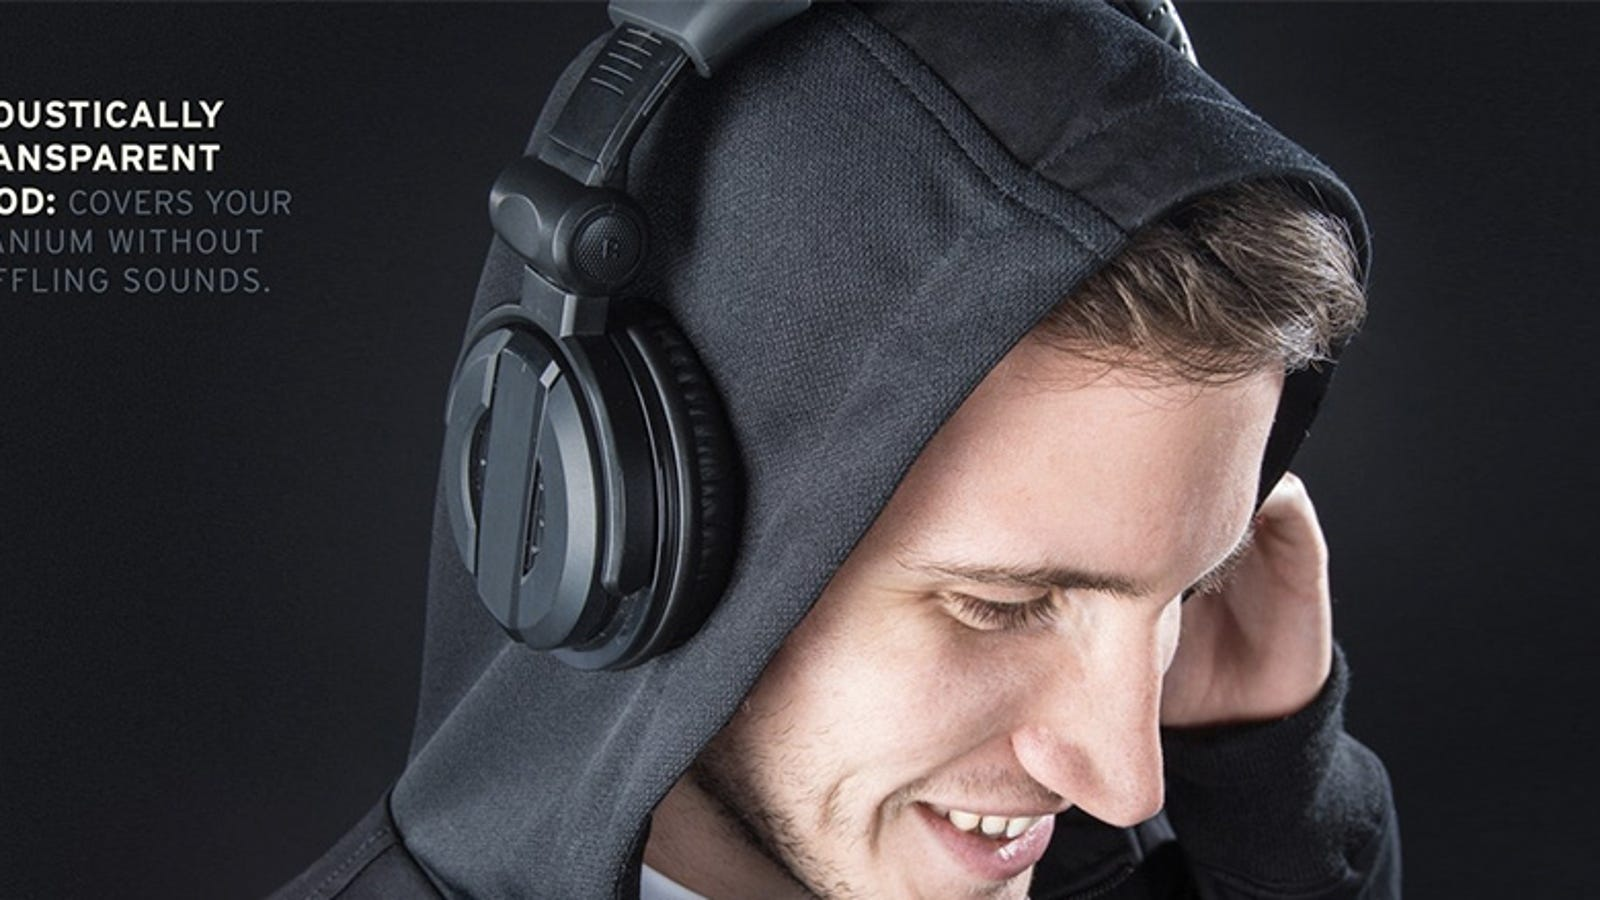 powerbeats wireless headphones earbuds replacement - A Hoodie Made From Speaker Fabric Won't Muffle Your Headphones